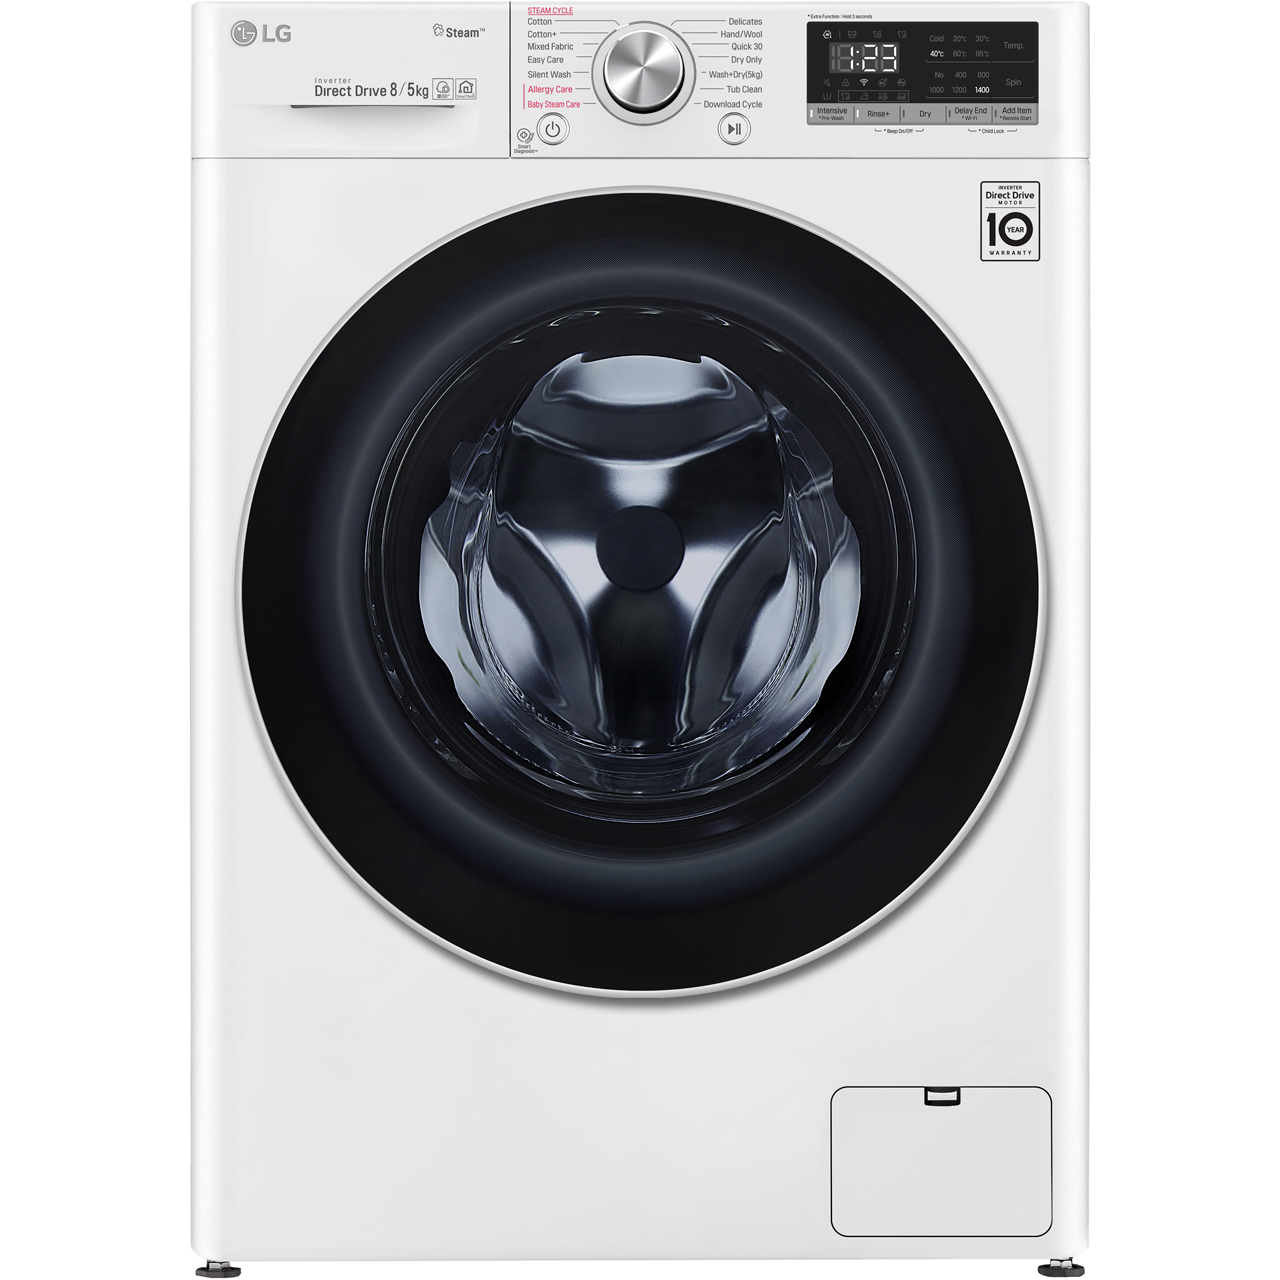 LG V5 FWV585WS Wifi Connected 8Kg / 5Kg Washer Dryer with 1400 rpm - White  - A Rated